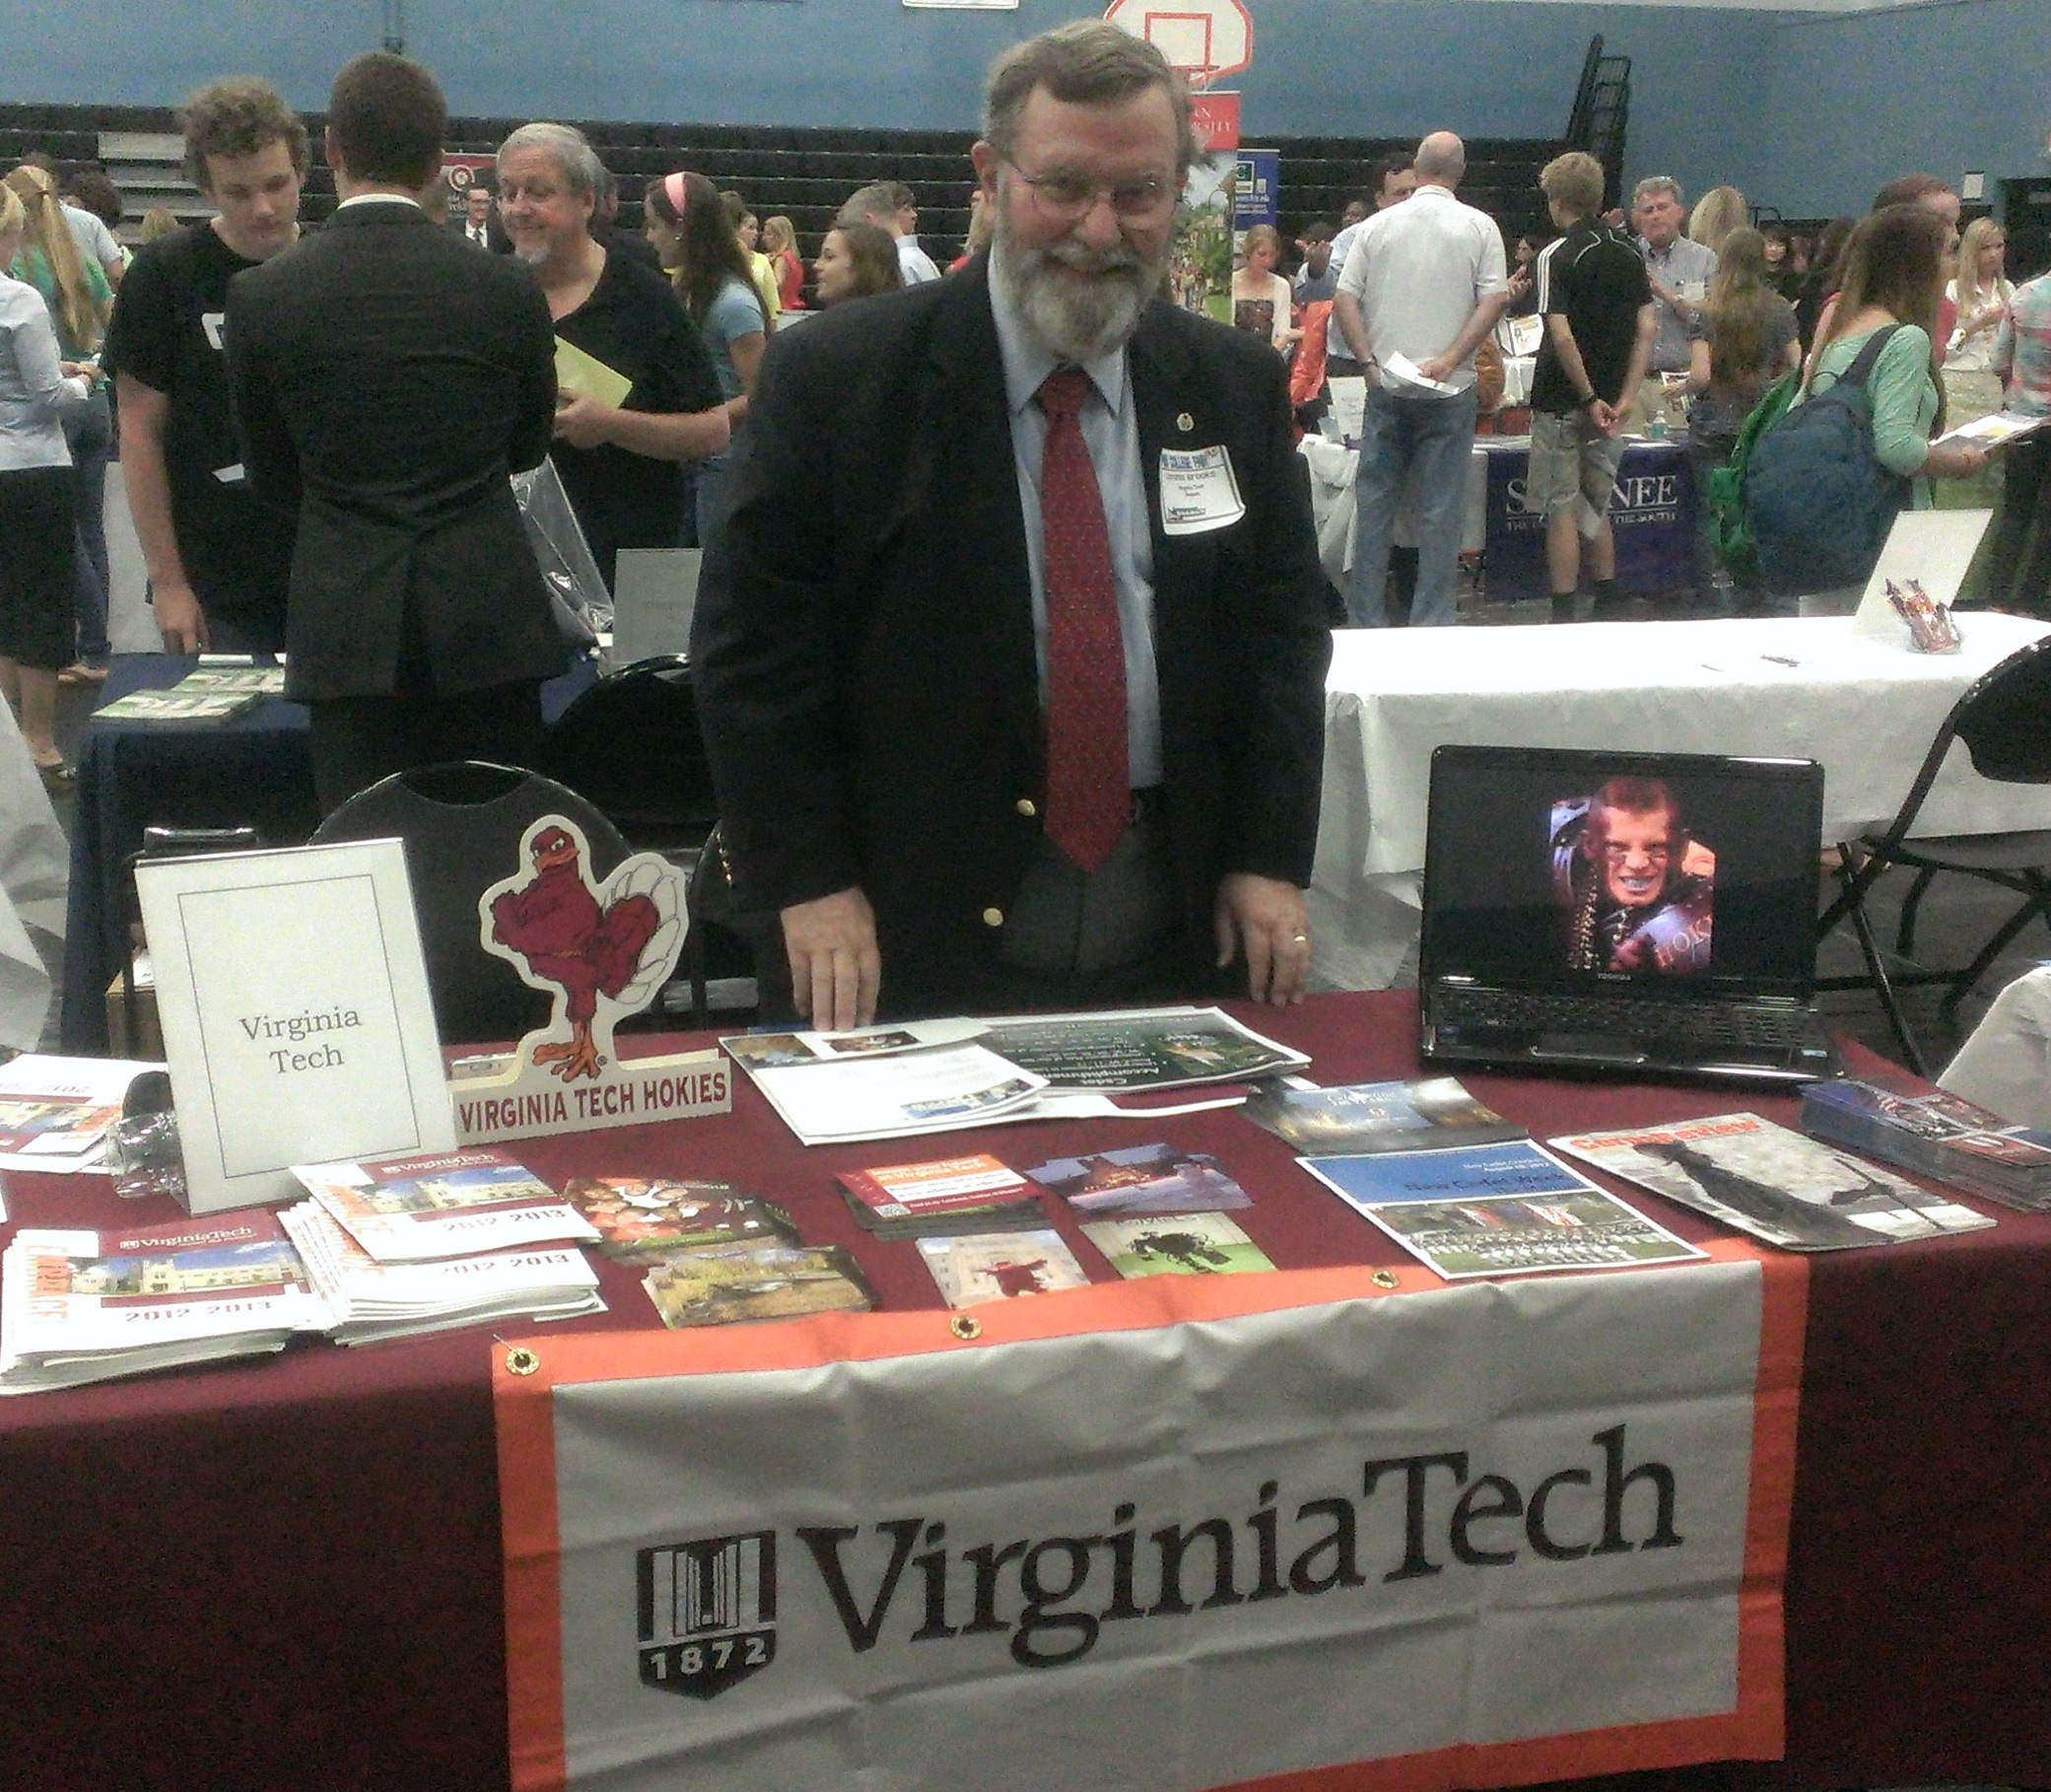 Lonnie Brooks VTCC '67 promoted both Virginia Tech and the Corps of Cadets at a Ponte Vedra, Fla., college fair.